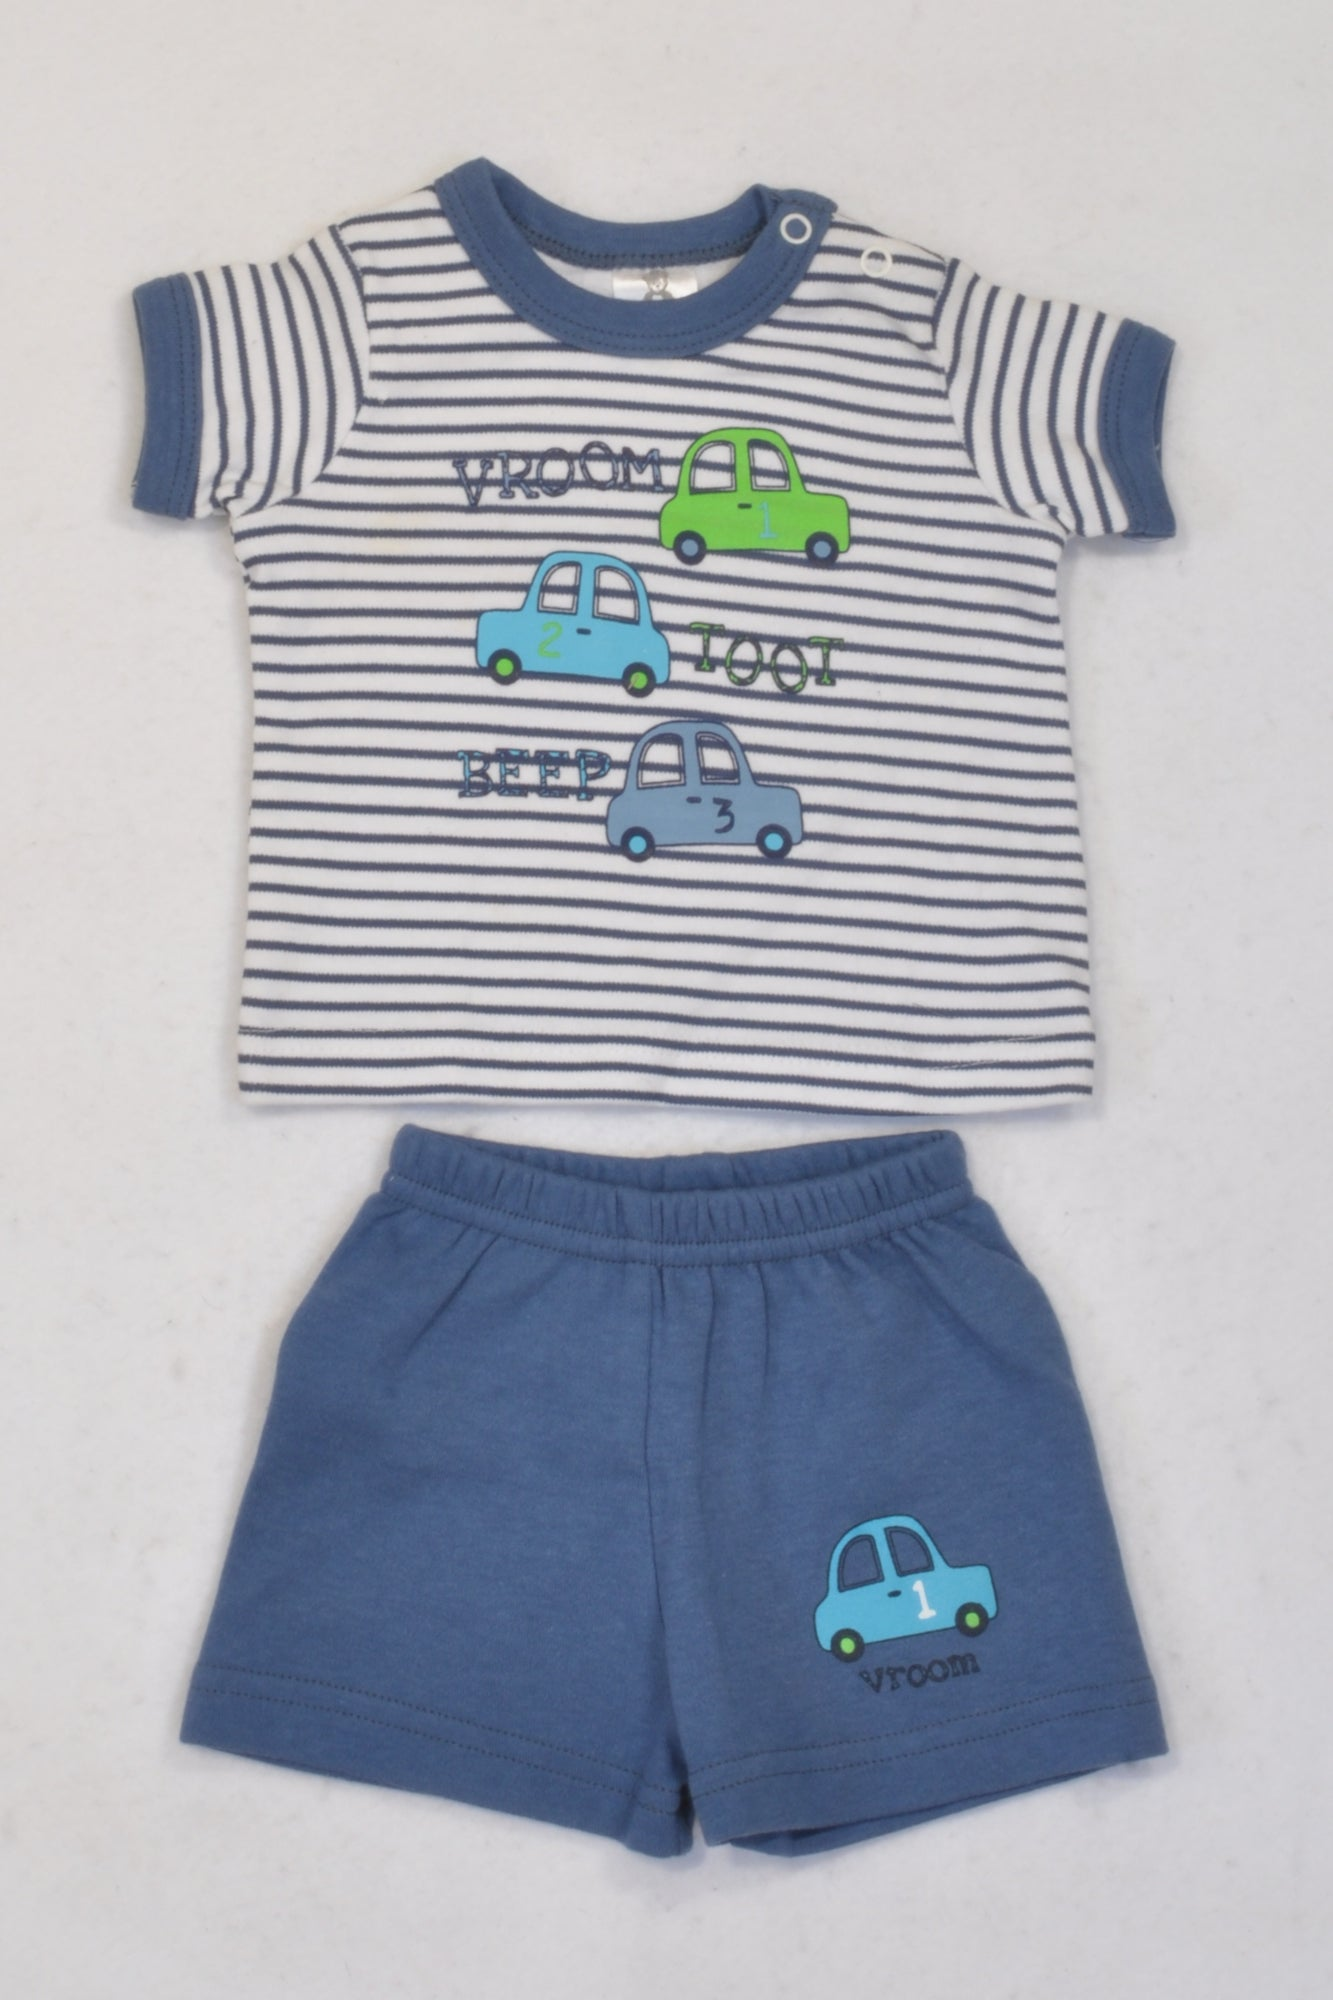 New Little Legend White & Blue Vroom Beep Outfit Boys 0-3 months